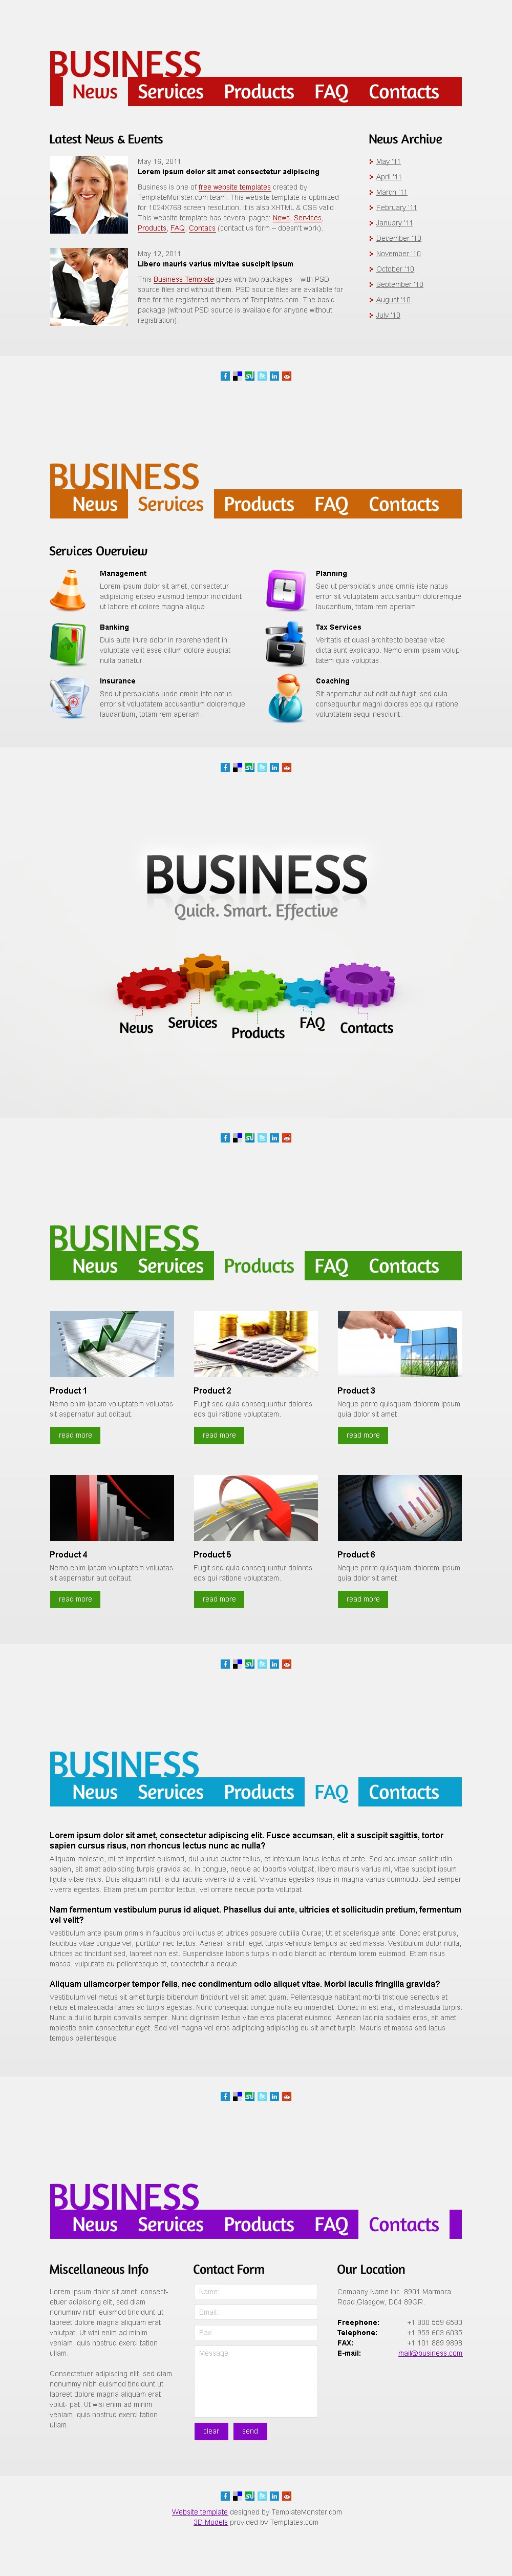 Free business web template single page layout zoom in accmission Choice Image